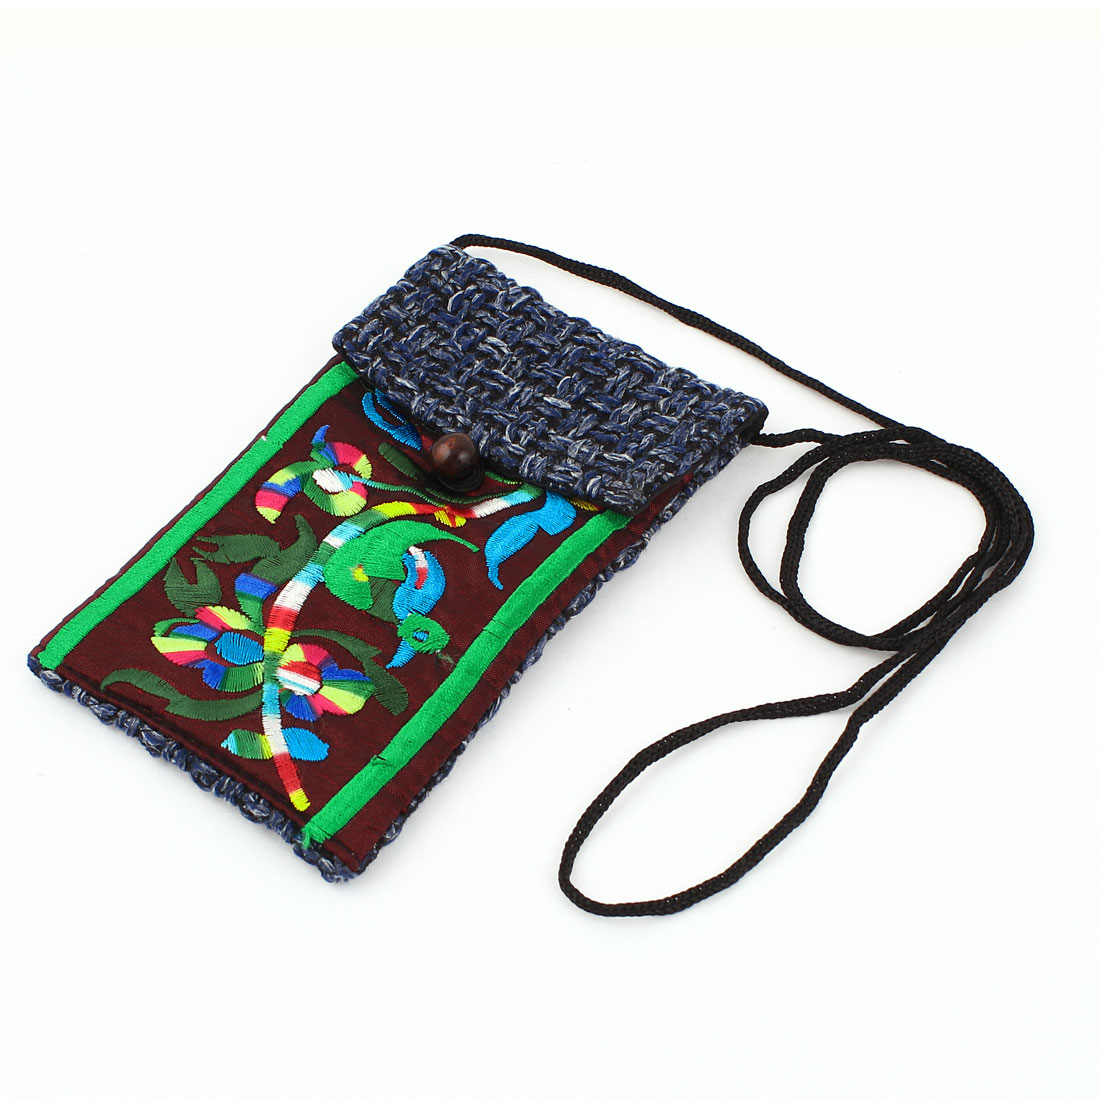 Steel Blue Burgundy Embroidery Floral Pattern Hand Strap Knitting Smartphone Pouch Bag